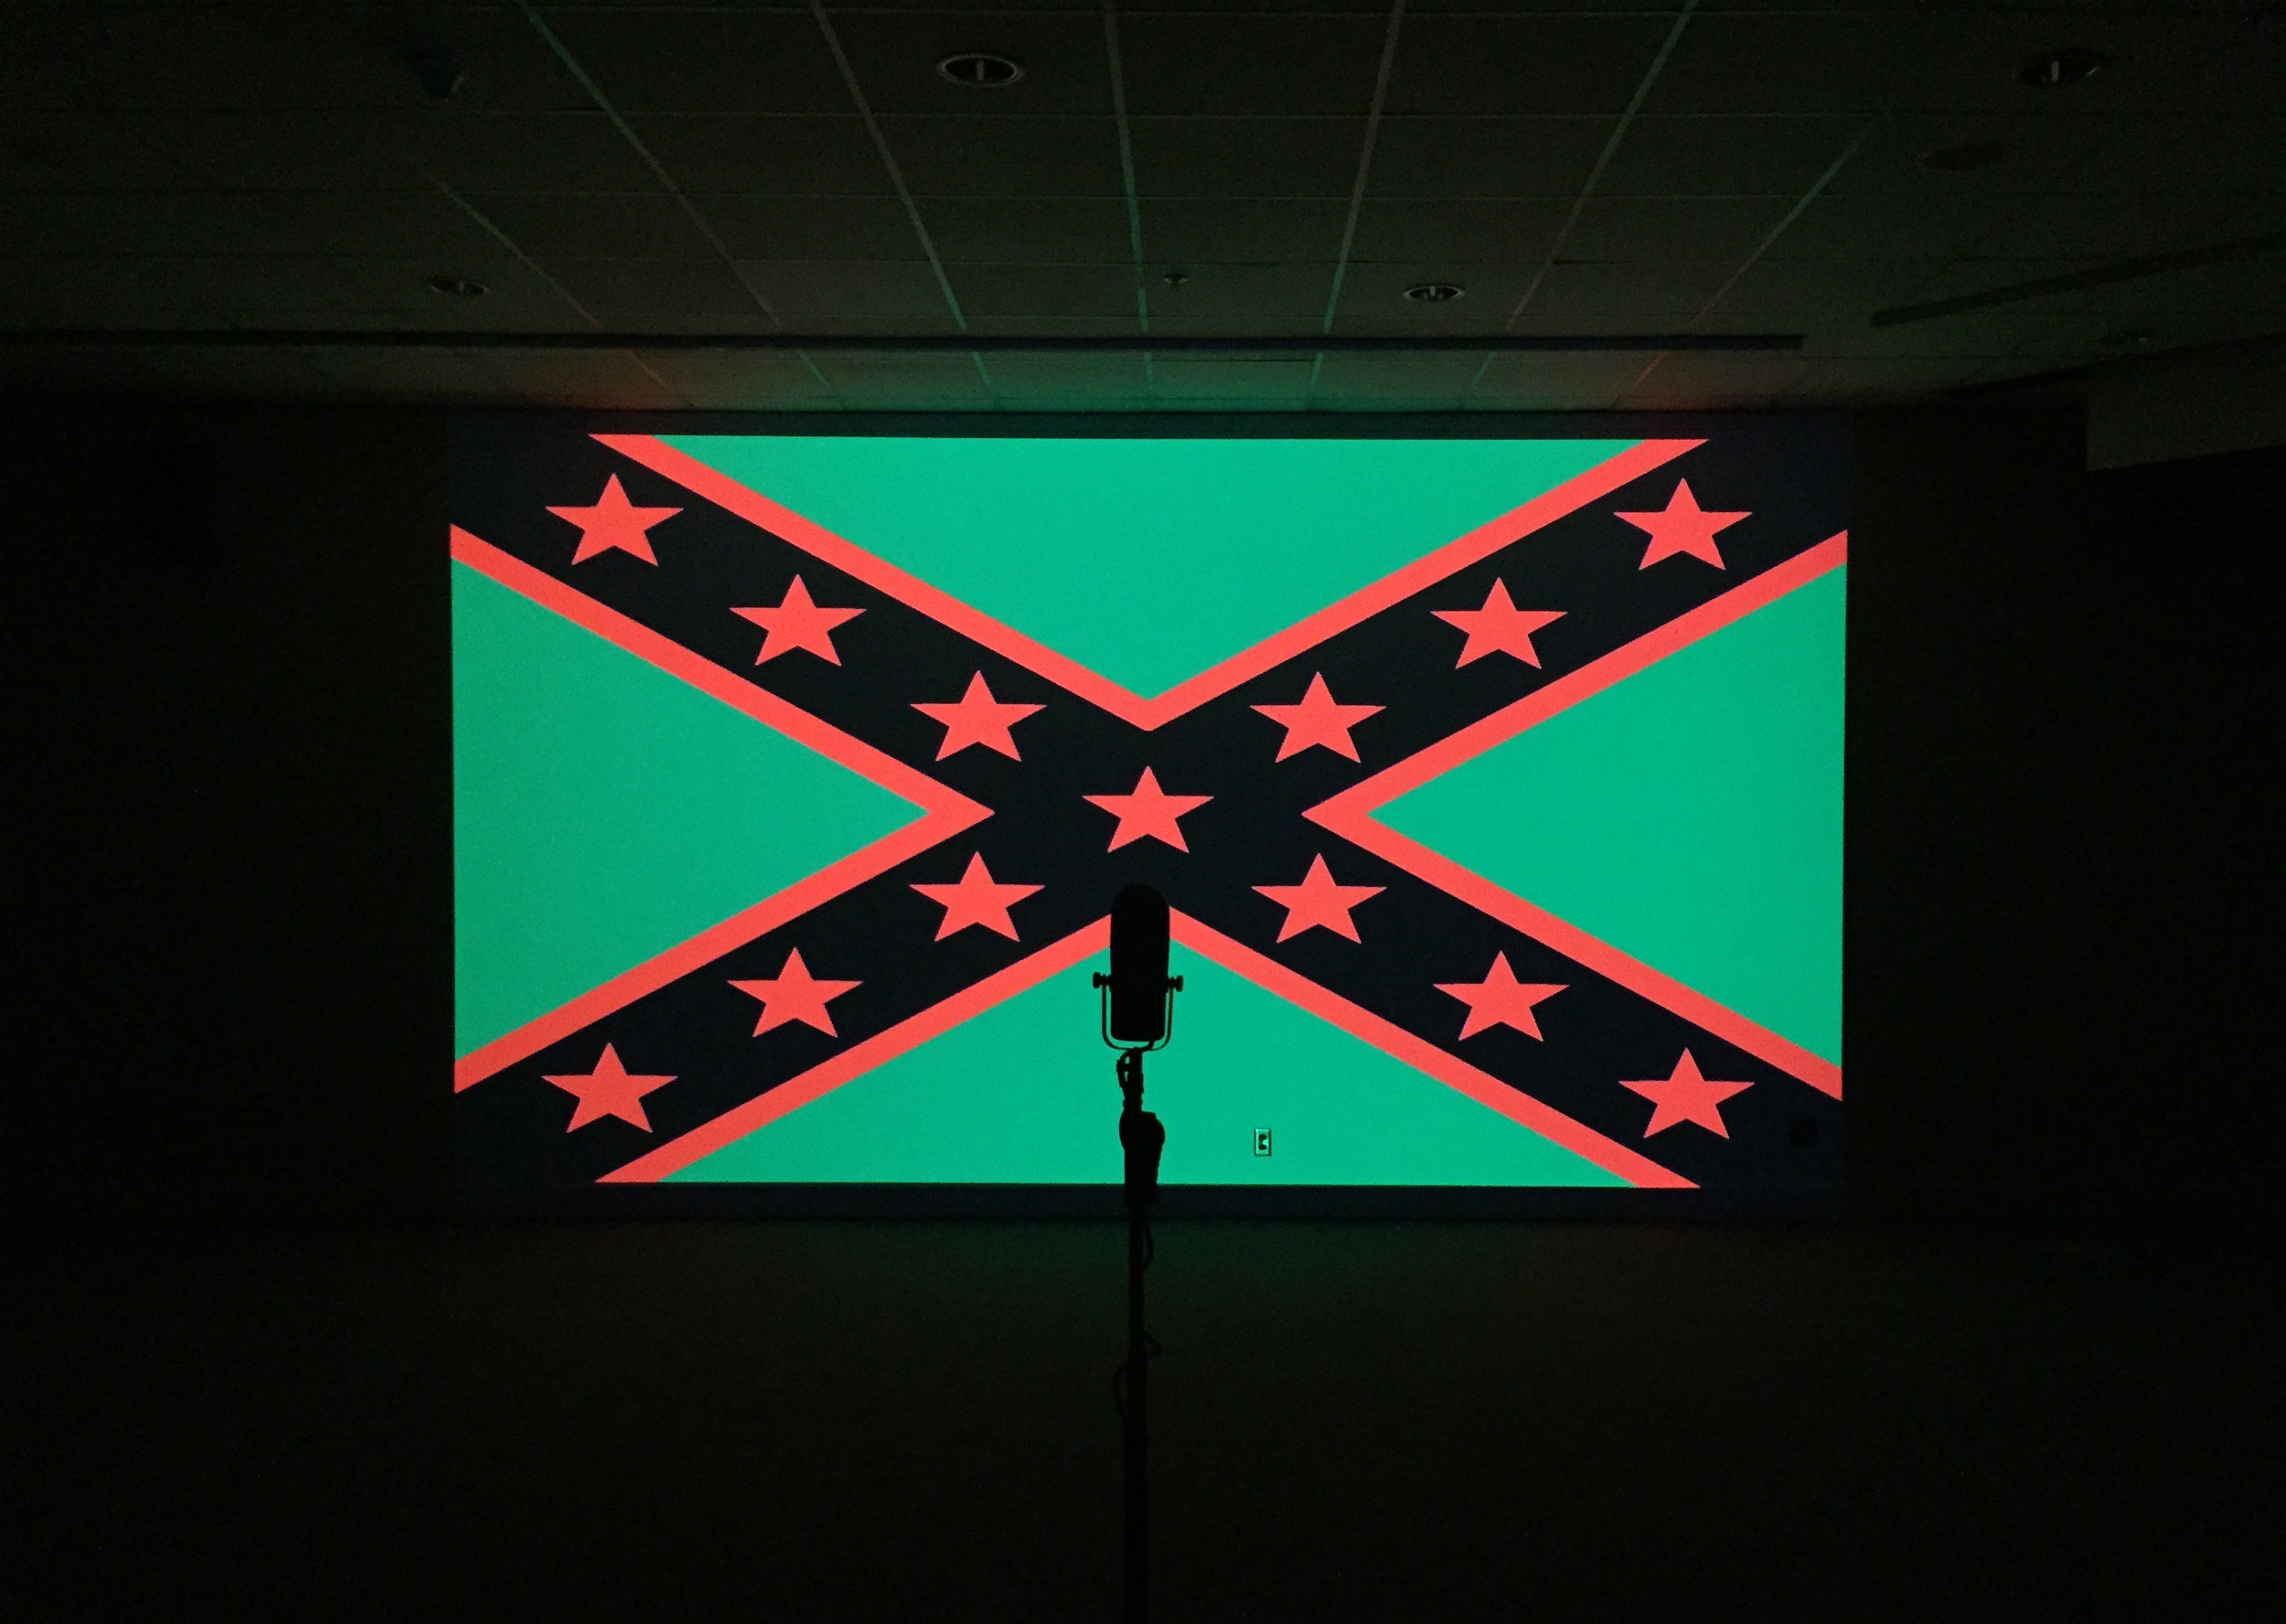 The Black Righteous Space by Hank Willis Thomas